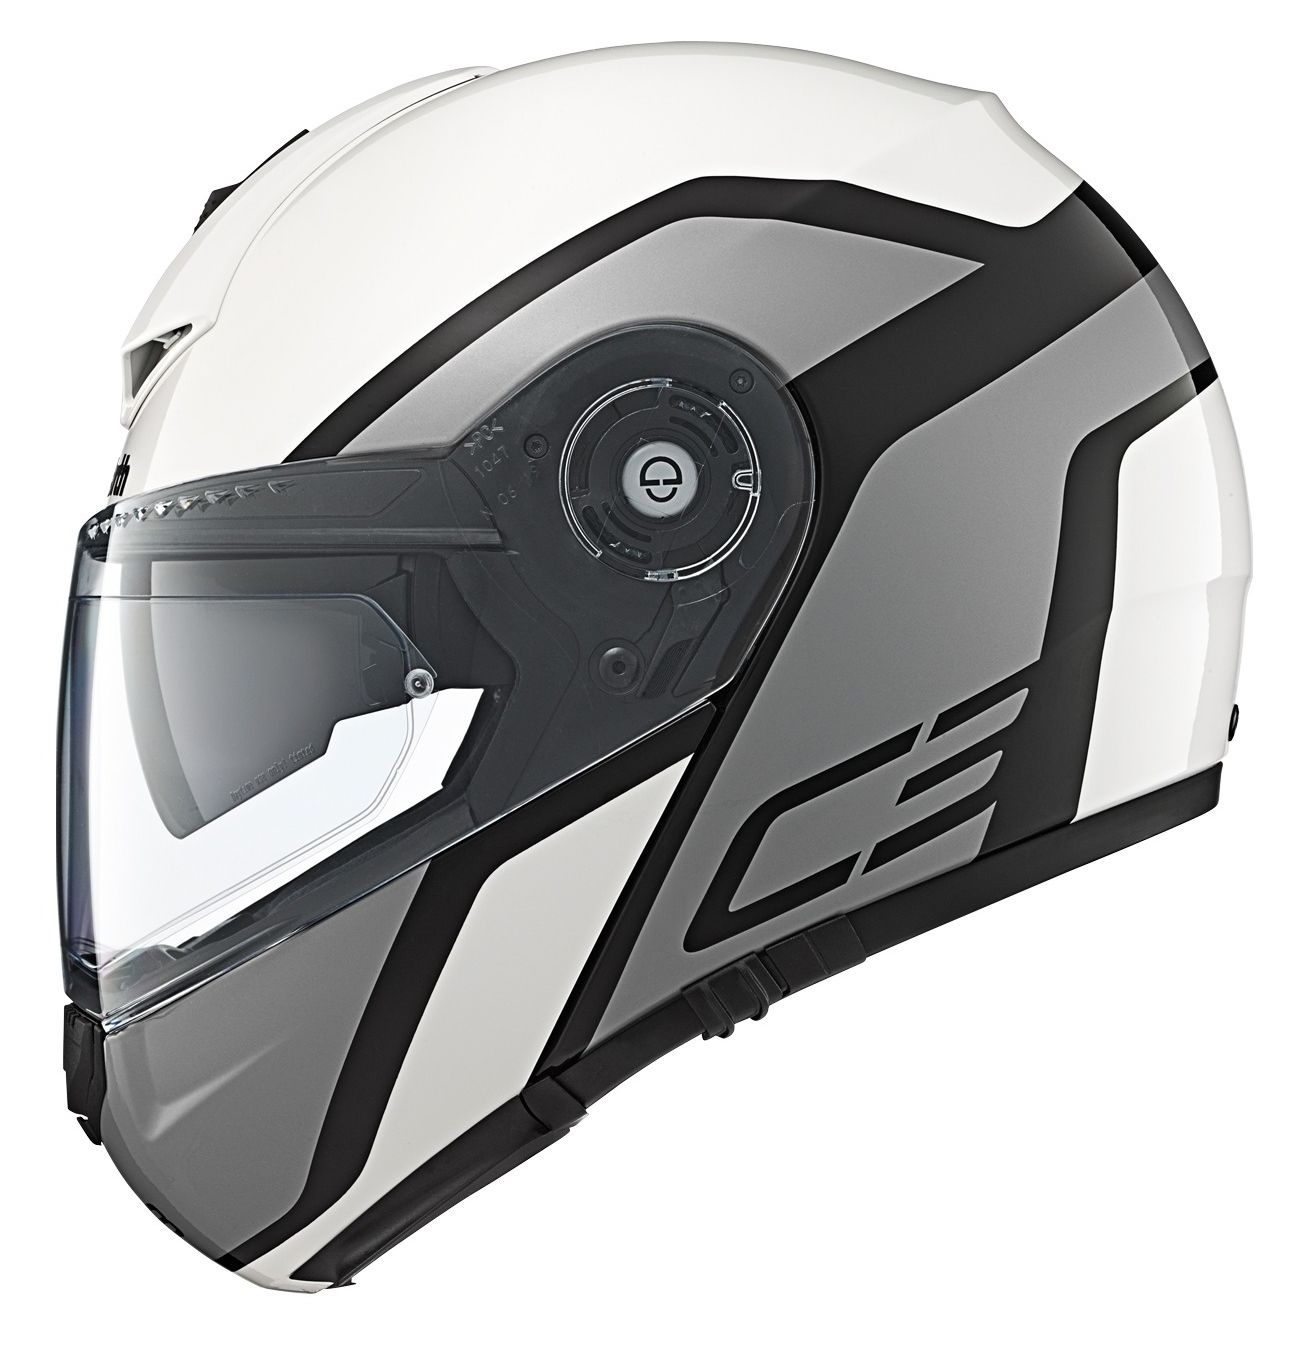 schuberth c3 pro observer helmet revzilla. Black Bedroom Furniture Sets. Home Design Ideas